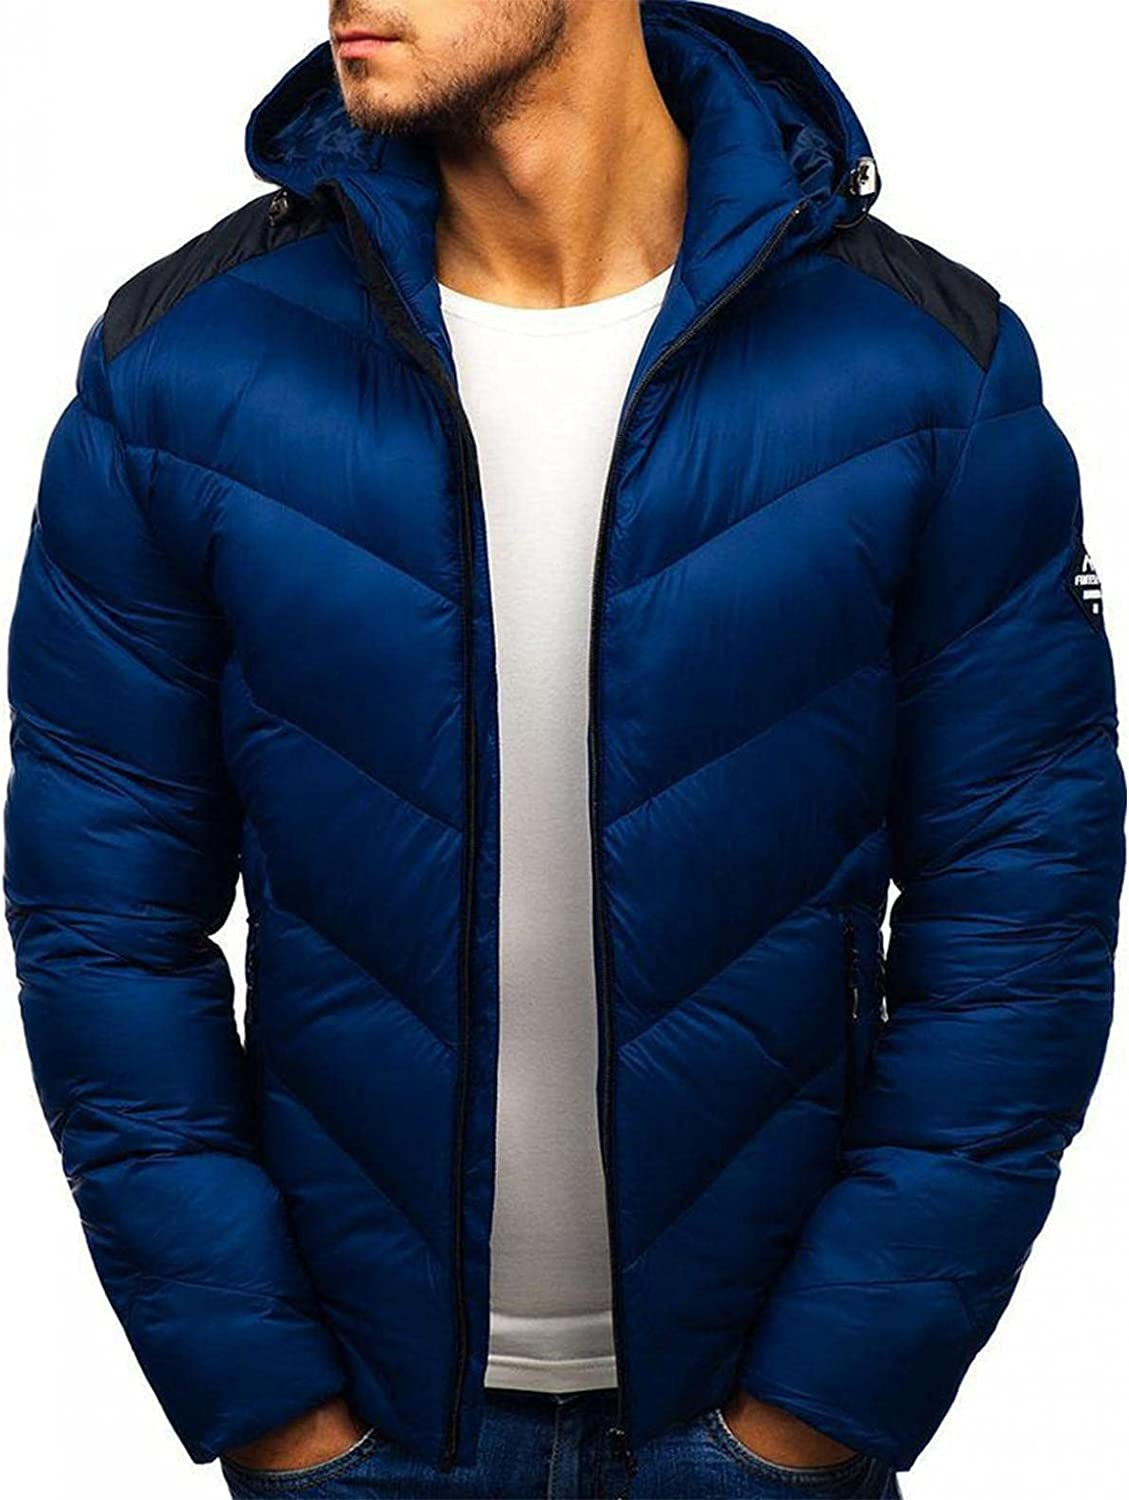 PHSHY Mens Hooded Puffer Jackets Winter Thermal Thicken Bubble Parka Coats Lightweight Packable Outwear with Pockets